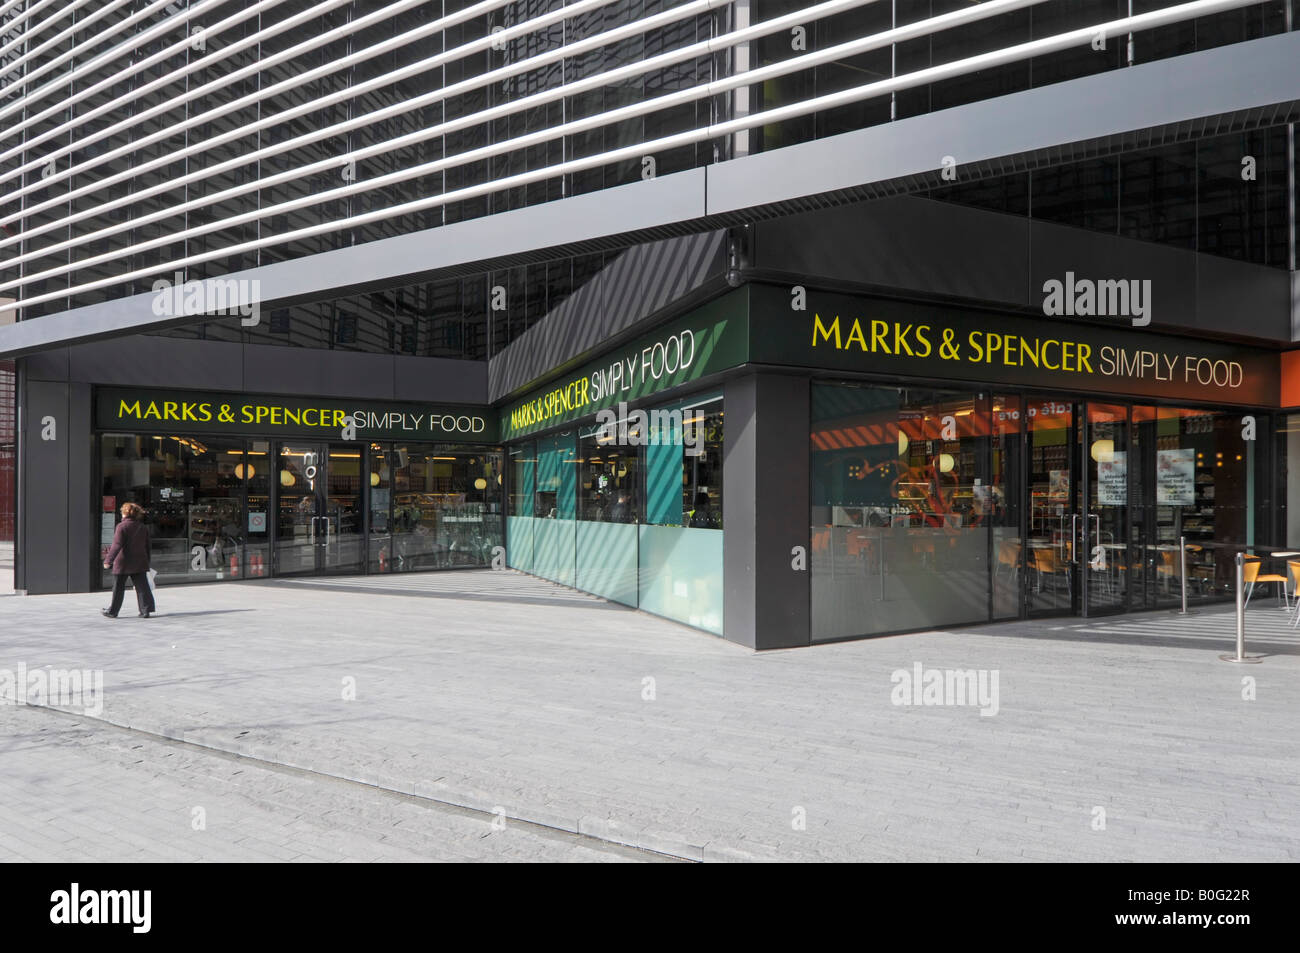 London Marks and Spencer Simply food store below modern office redevelopment - Stock Image